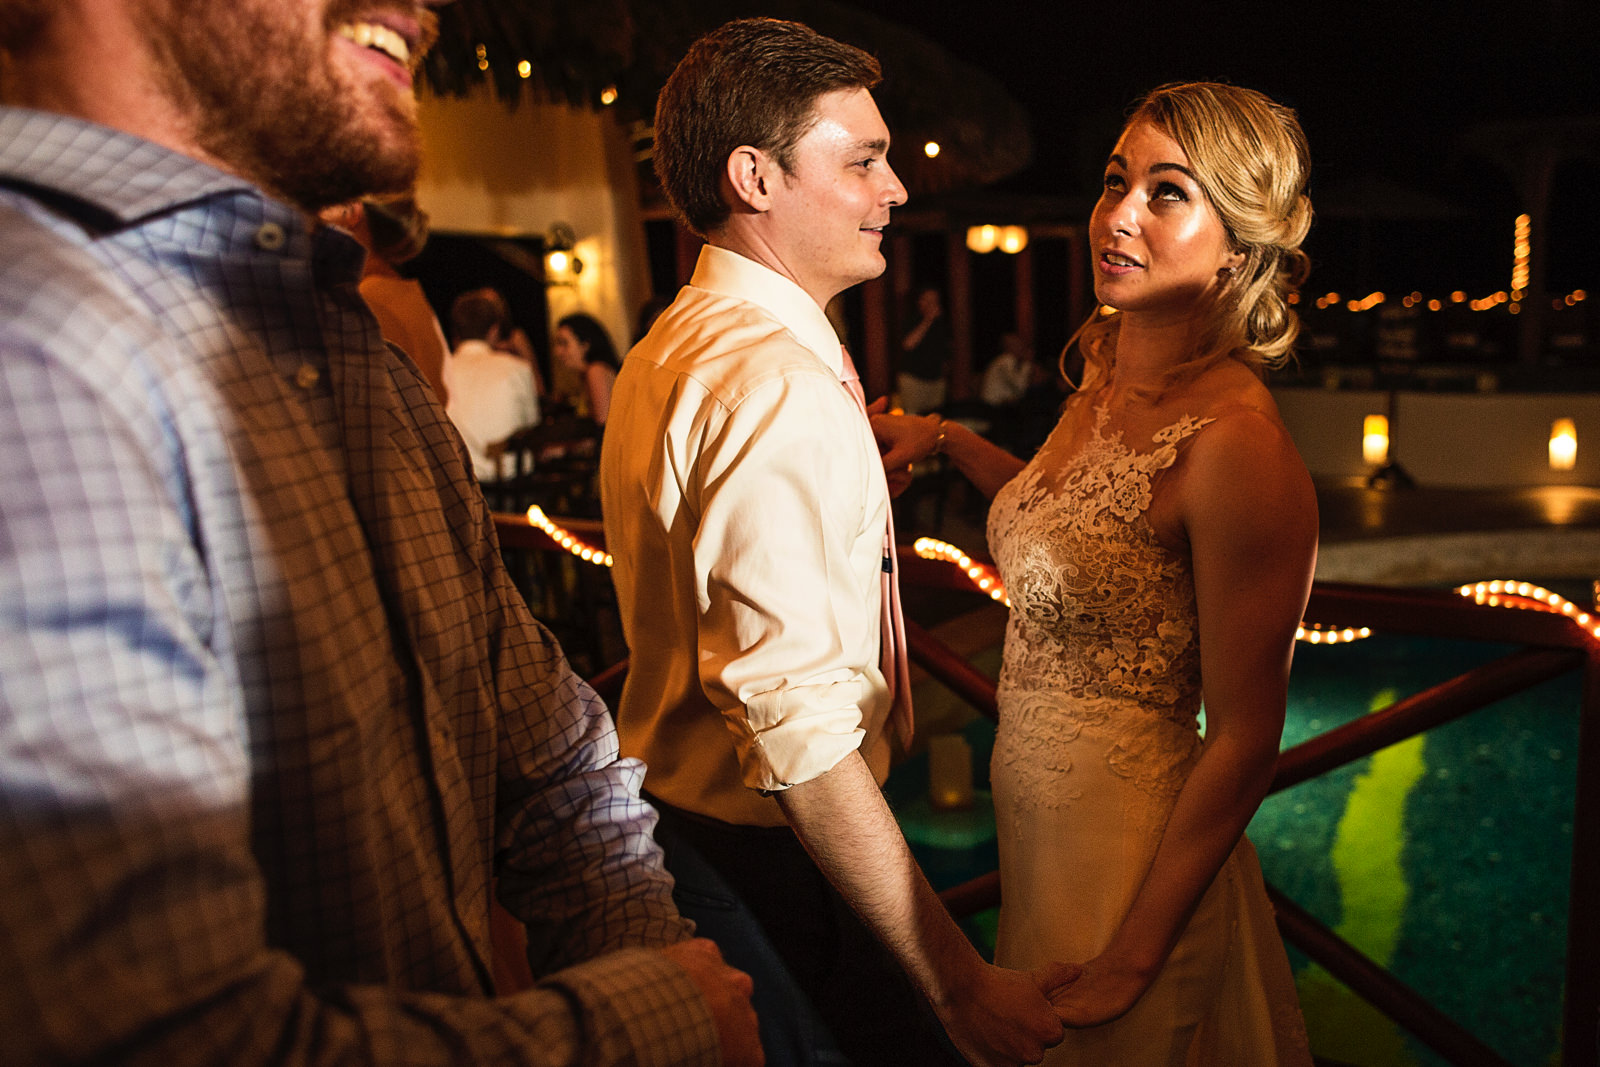 party-dance-lights-fun-loving-hotel-playa-fiesta-bride-groom-wedding.jpg